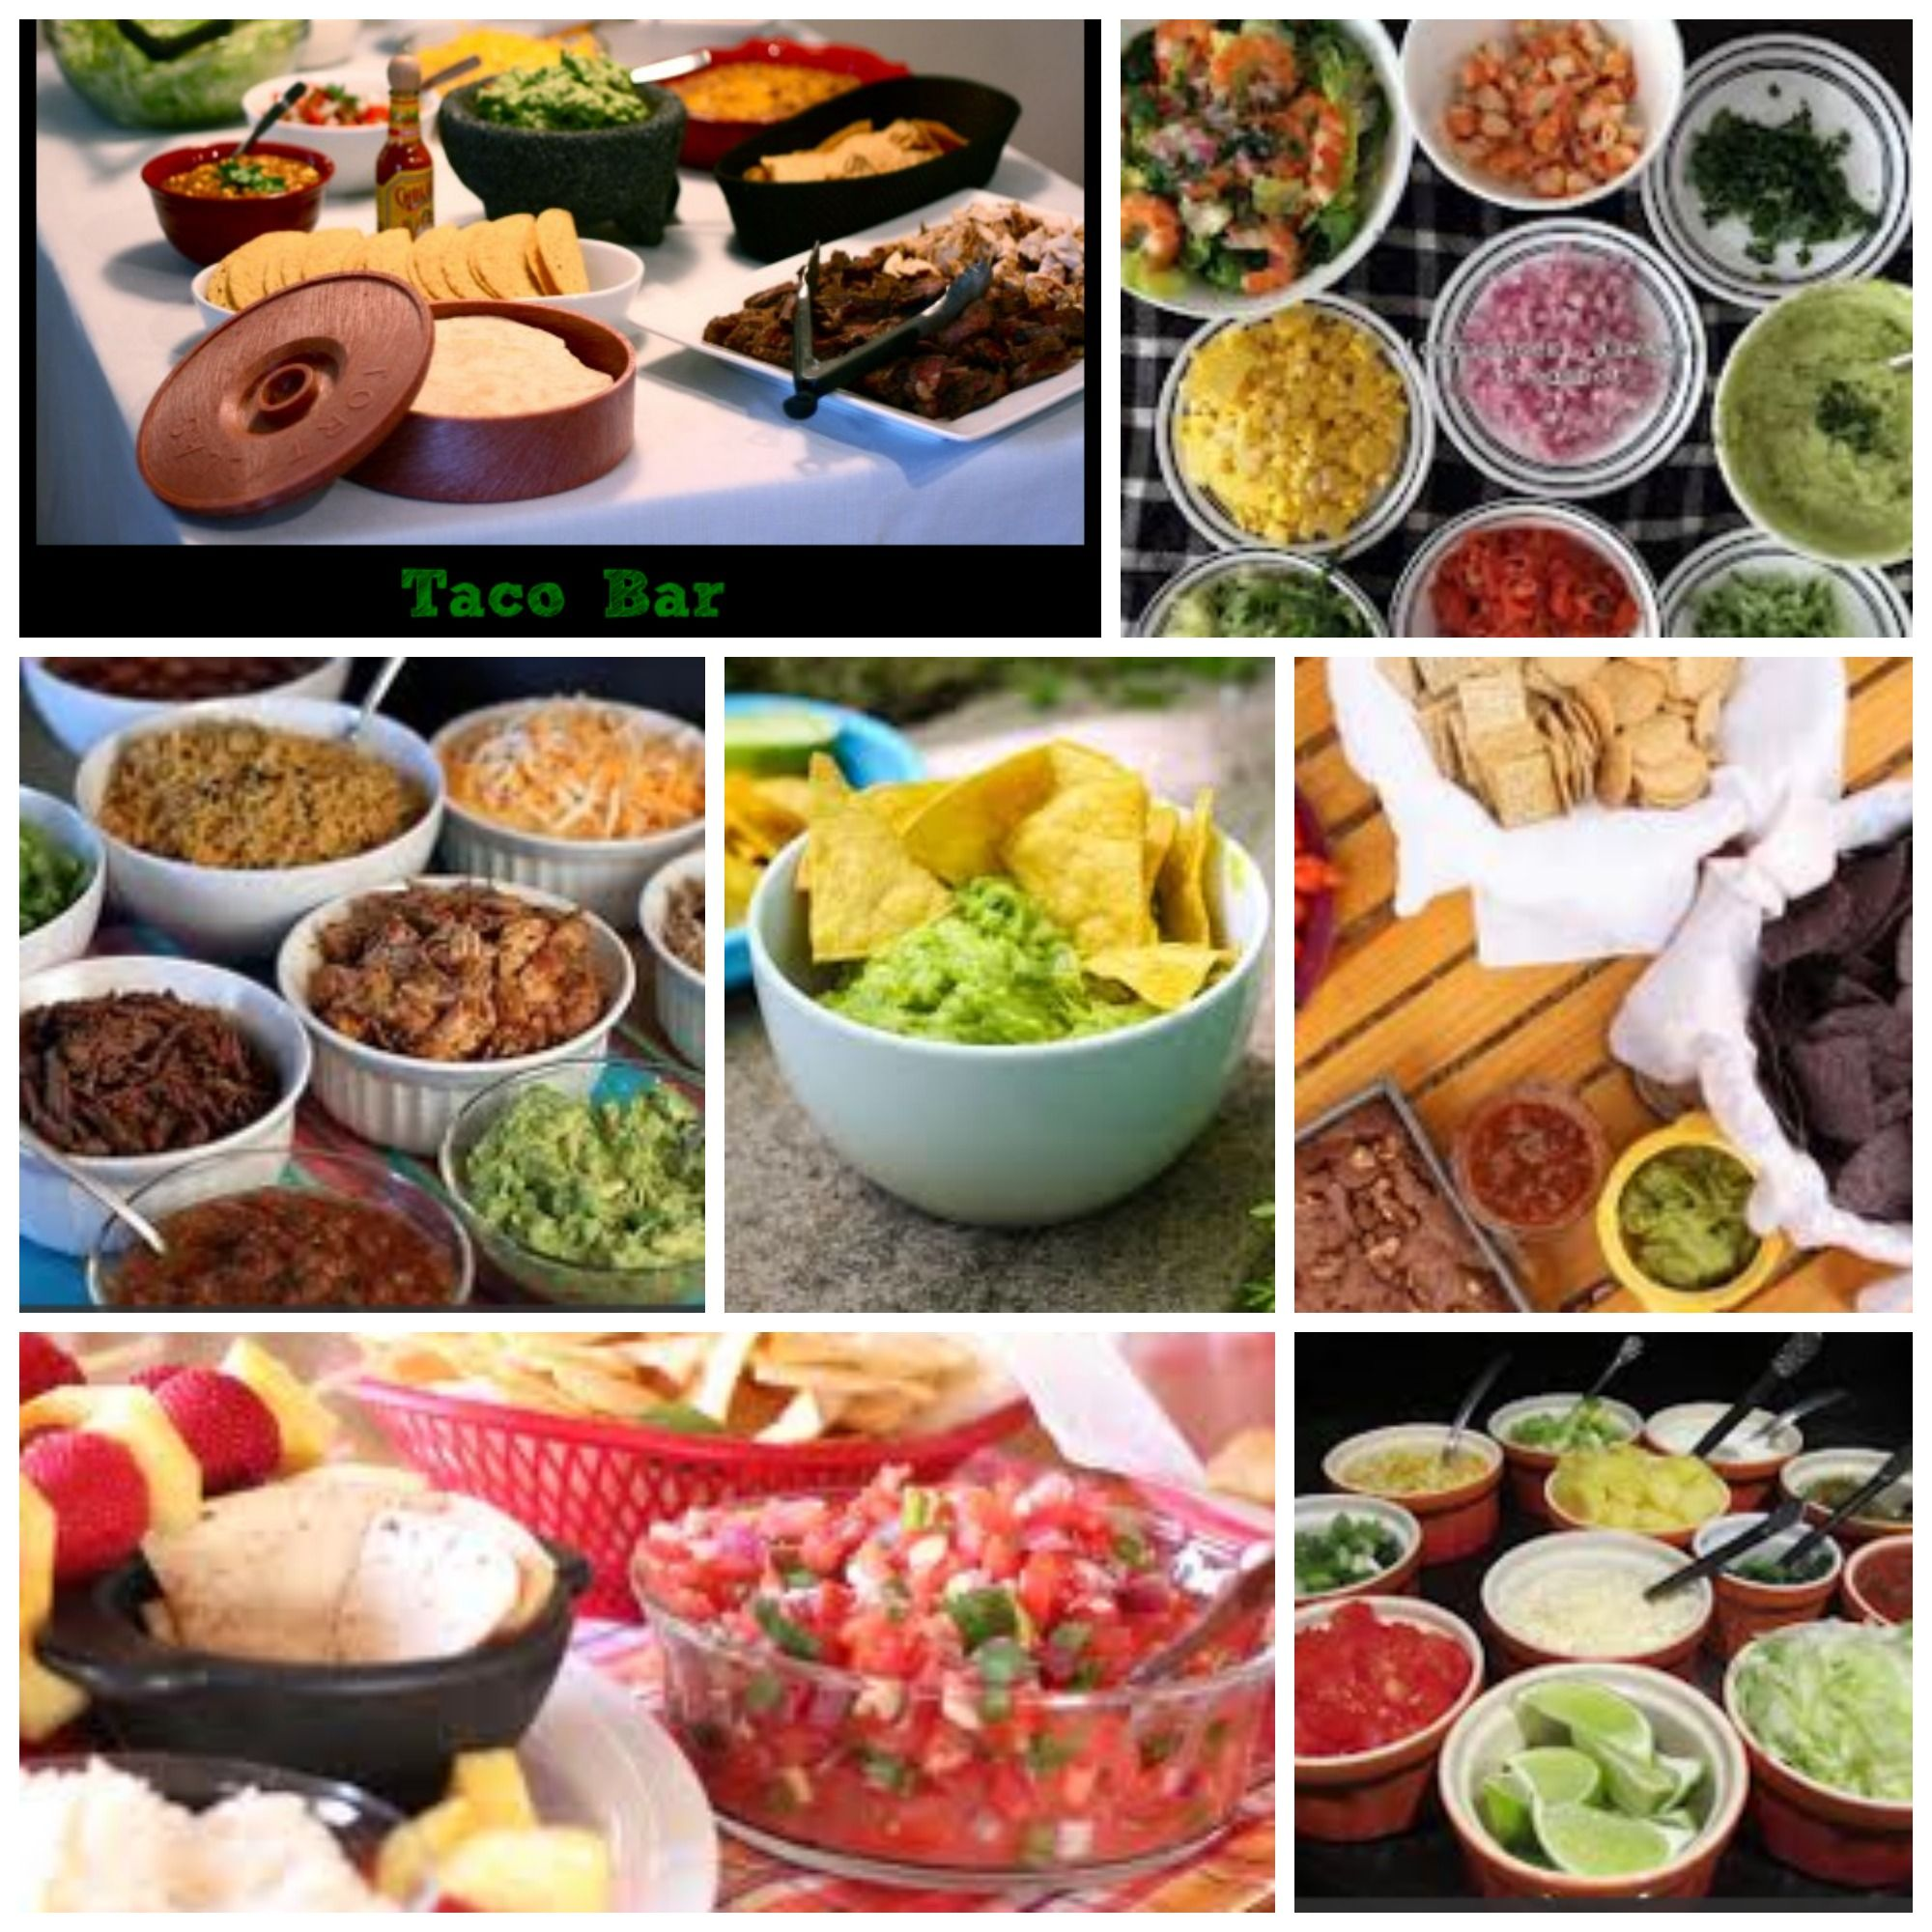 Taco bar ideas to feed groups of 10 christmas for Food bar party ideas